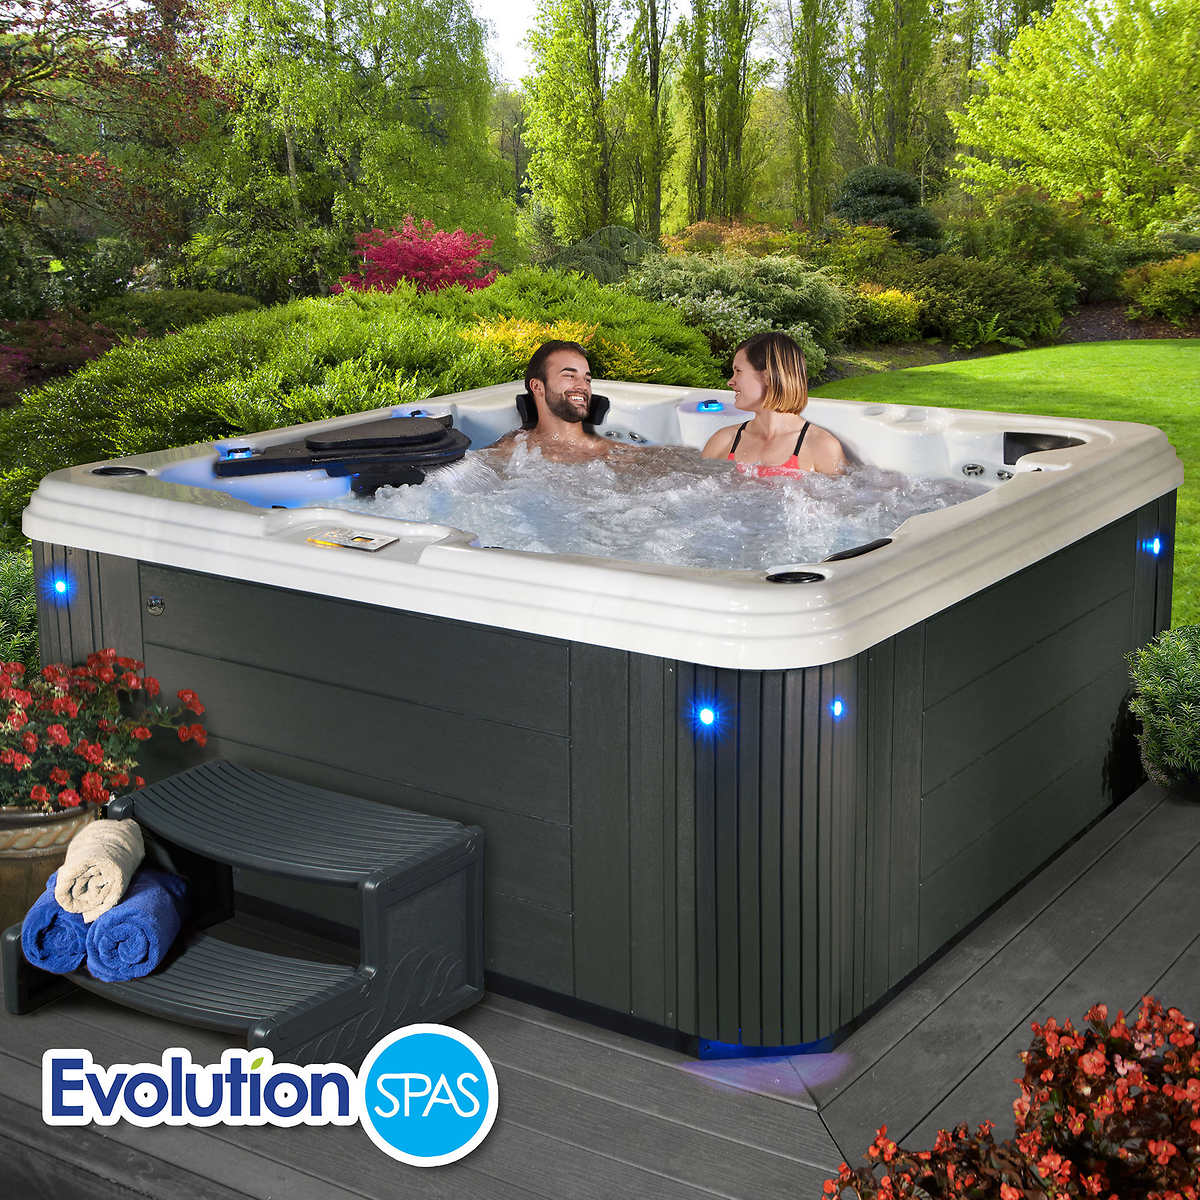 before spa tub of carefully thinking image for malaysia ireland tubs near instructions full outdoor costco hot hotel small fo prices uk size ideas sale me the buying jacuzzi